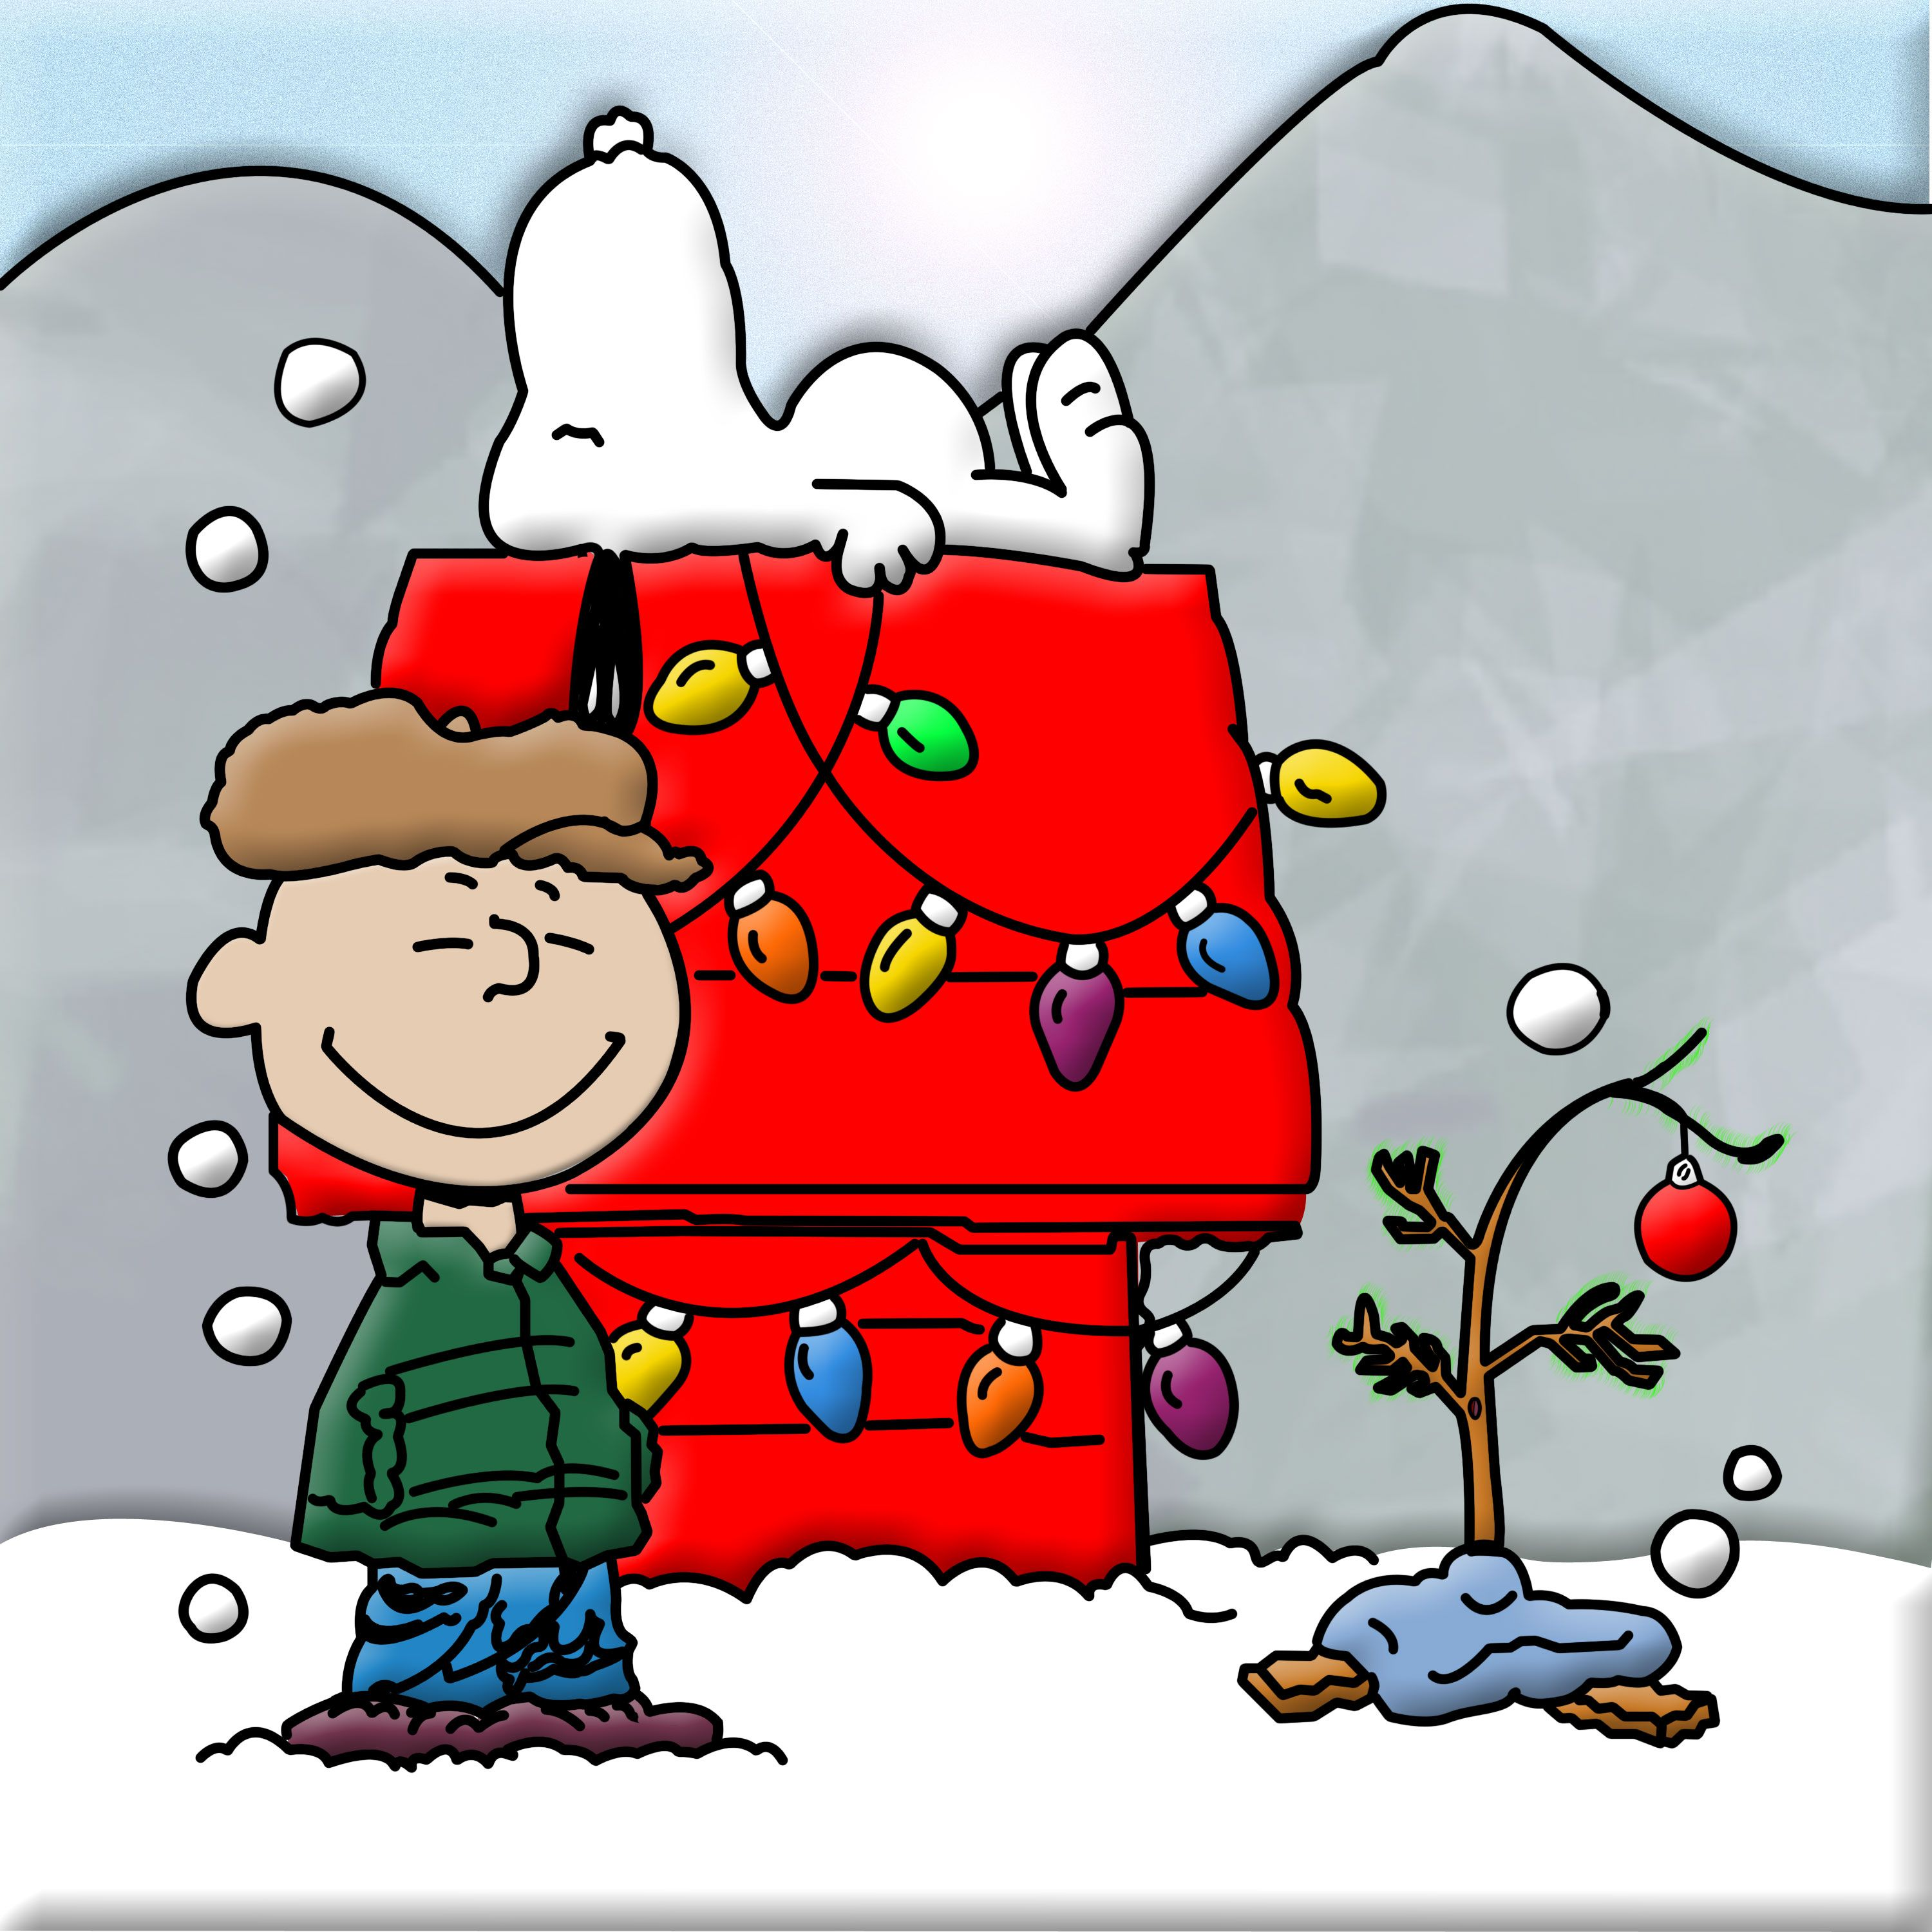 charlie brown christmas tree google search charlie brown and rh pinterest com charlie brown christmas clip art free charlie brown christmas clipart black and white